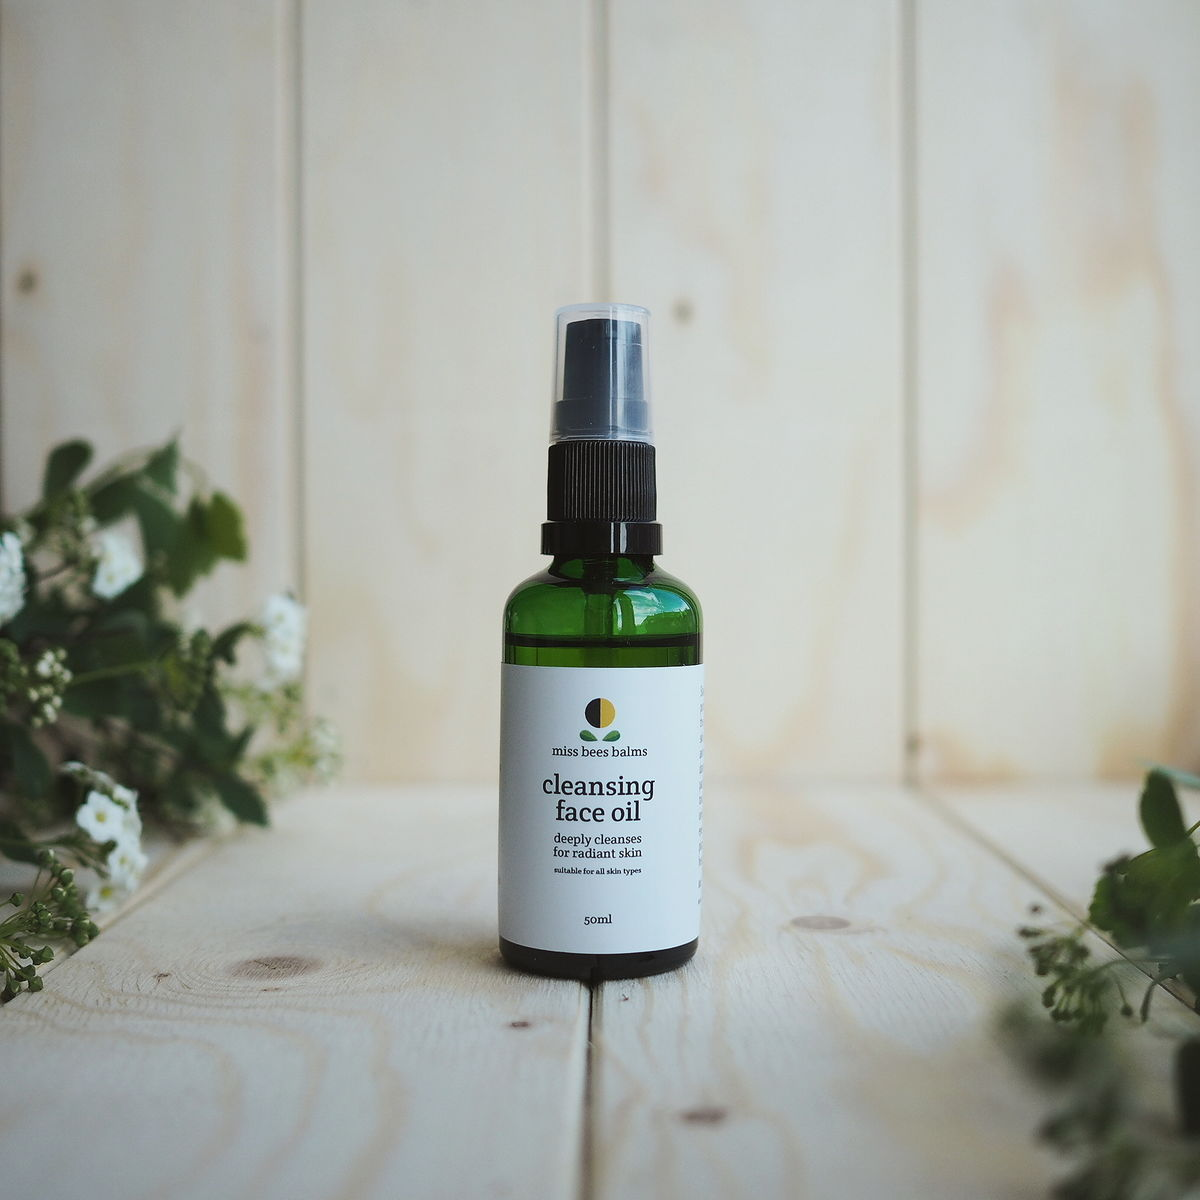 cleansing face oil  - product image